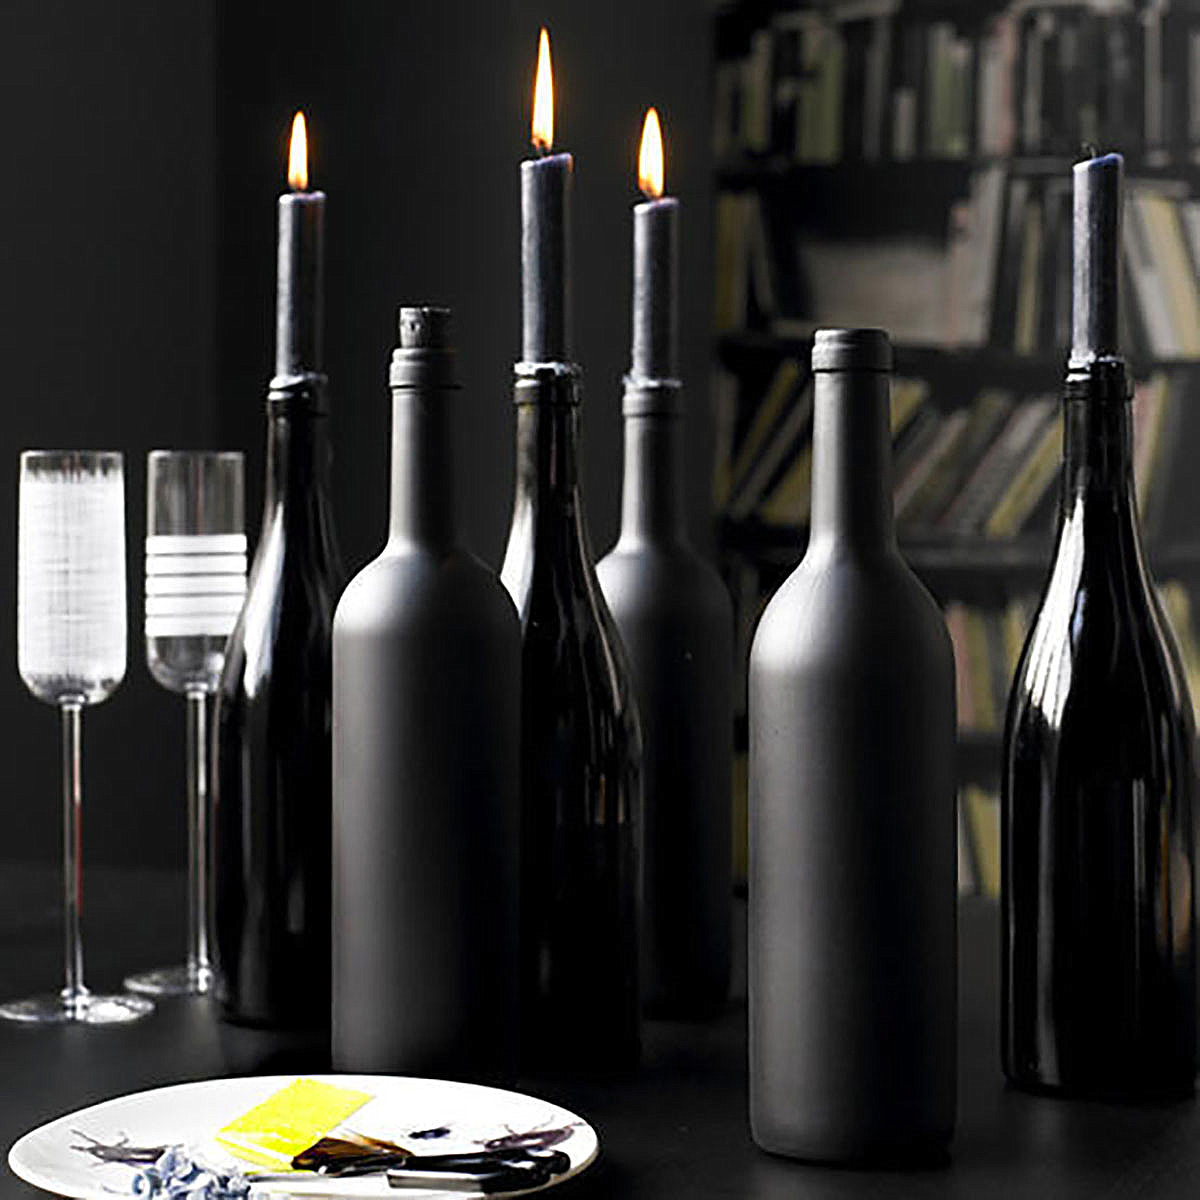 Wine Bottle Centerpieces Budgetfriendly And Looking Chic. Dining Room Table Chalk Paint. Channel 4 Living Room Ideas. Iron Dining Room Table. Living Room In Chandler. Furniture Living Room. Classic Modern Dining Room. Small Long Living Room Ideas. Organize My Living Room